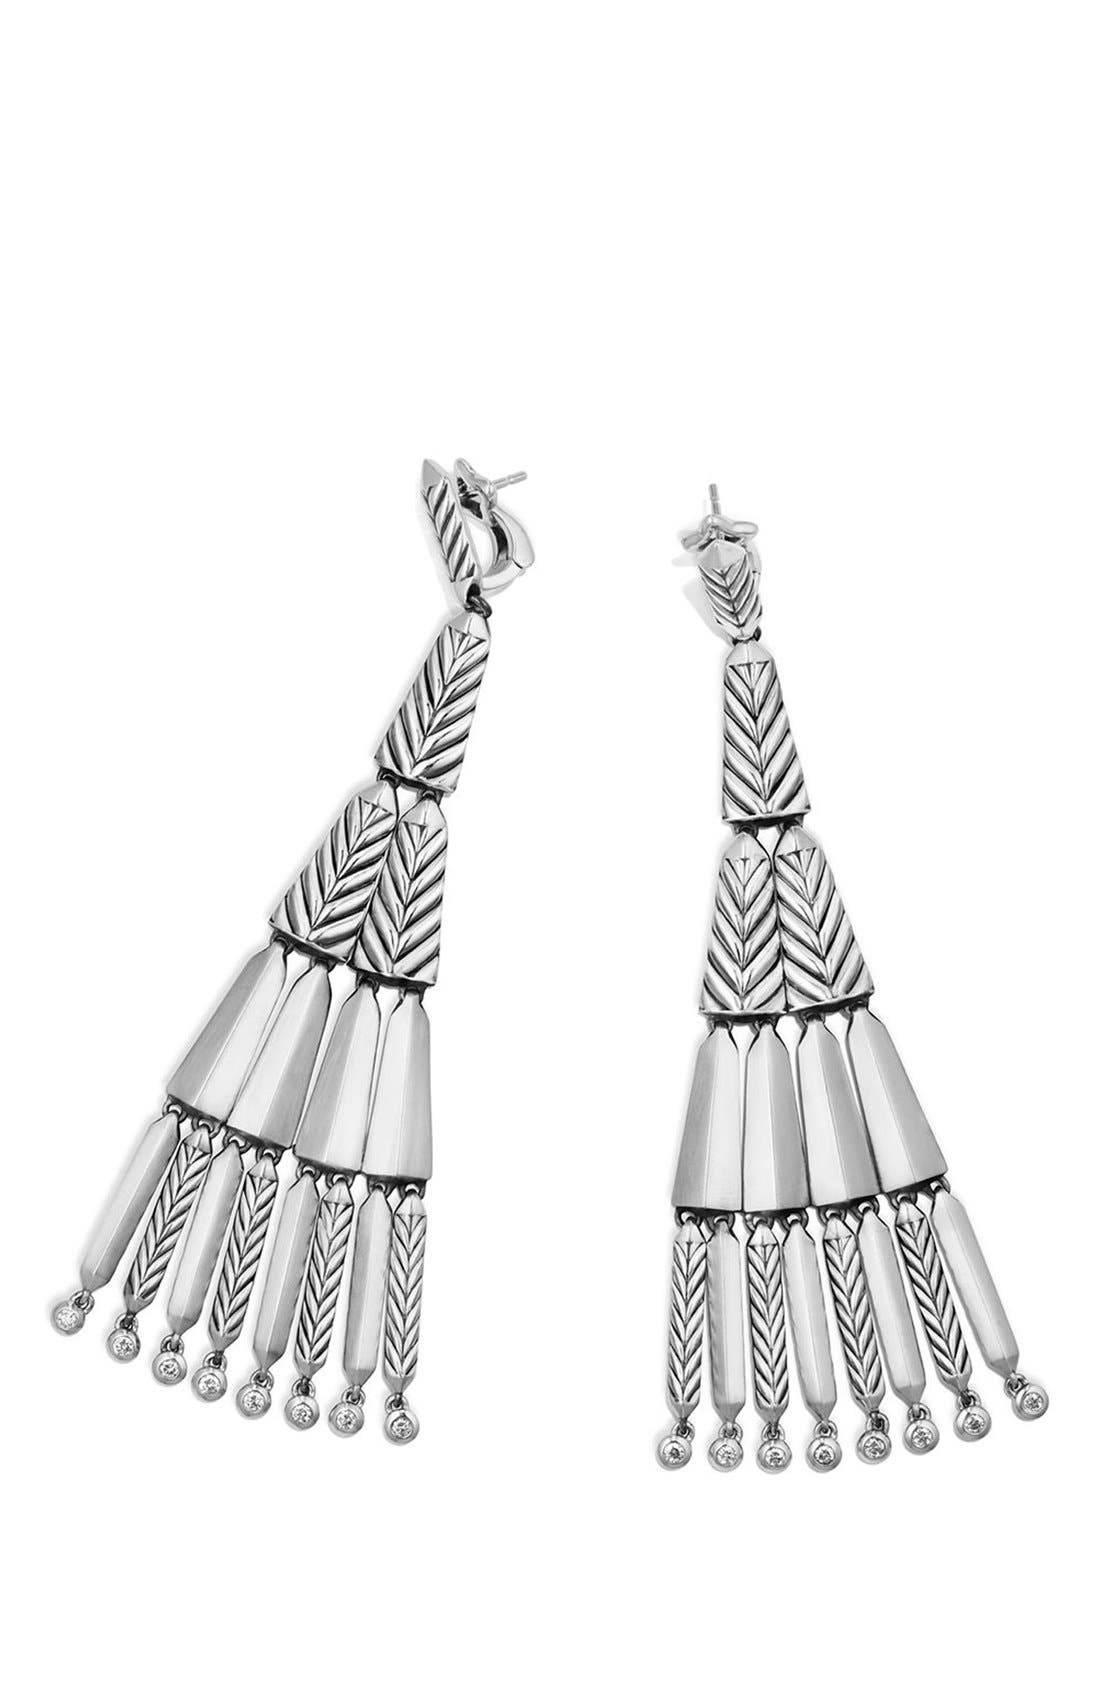 Stax Fringe Earrings with Diamonds,                             Alternate thumbnail 4, color,                             SILVER